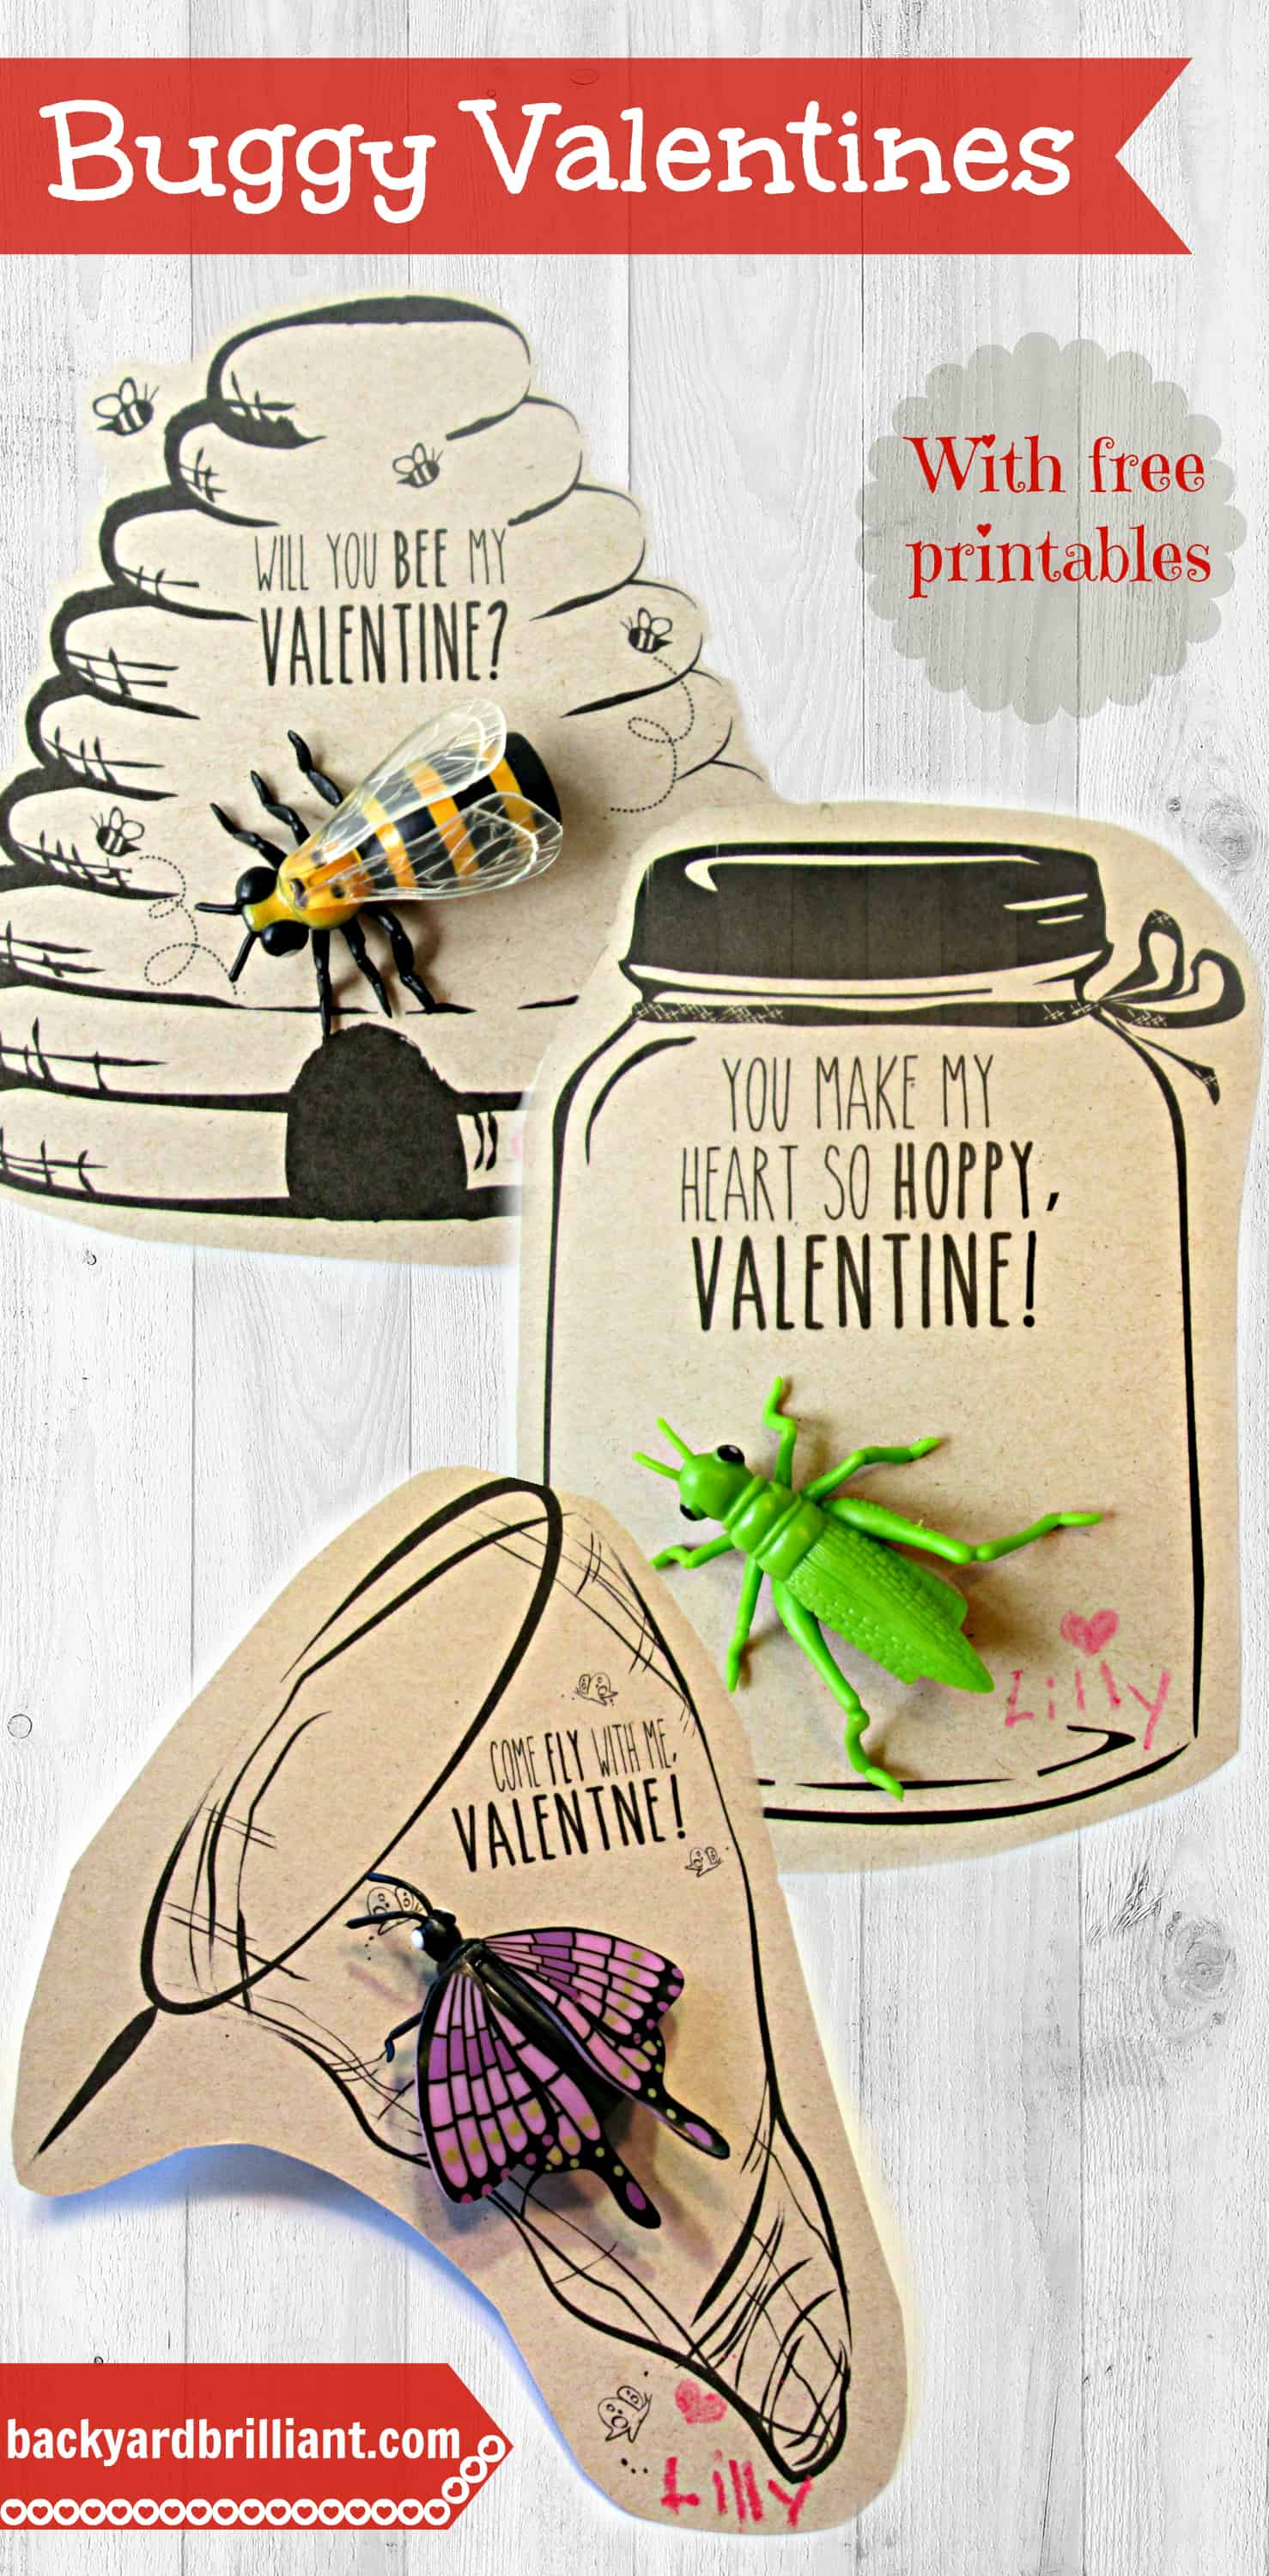 Will You Bee My Valentine D Other Handmade Buggy Valentines